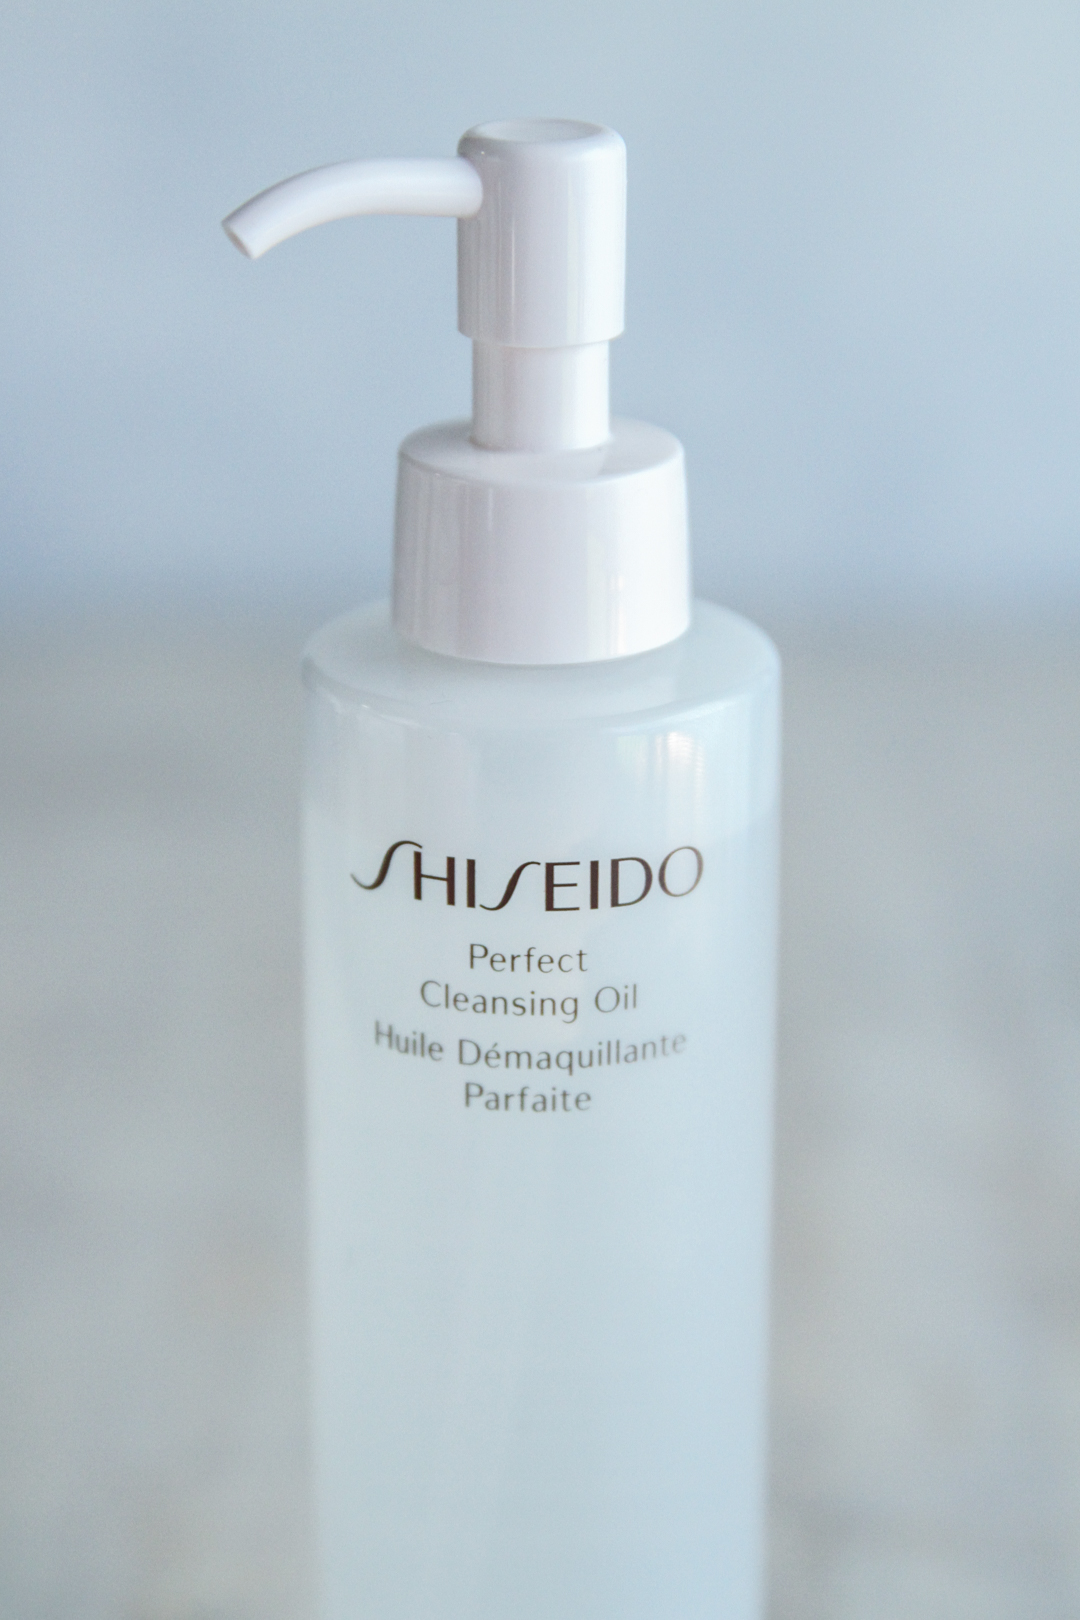 Shiseido cleansing oil, what to use for dry skin, dry skin products, face wash for dry skin